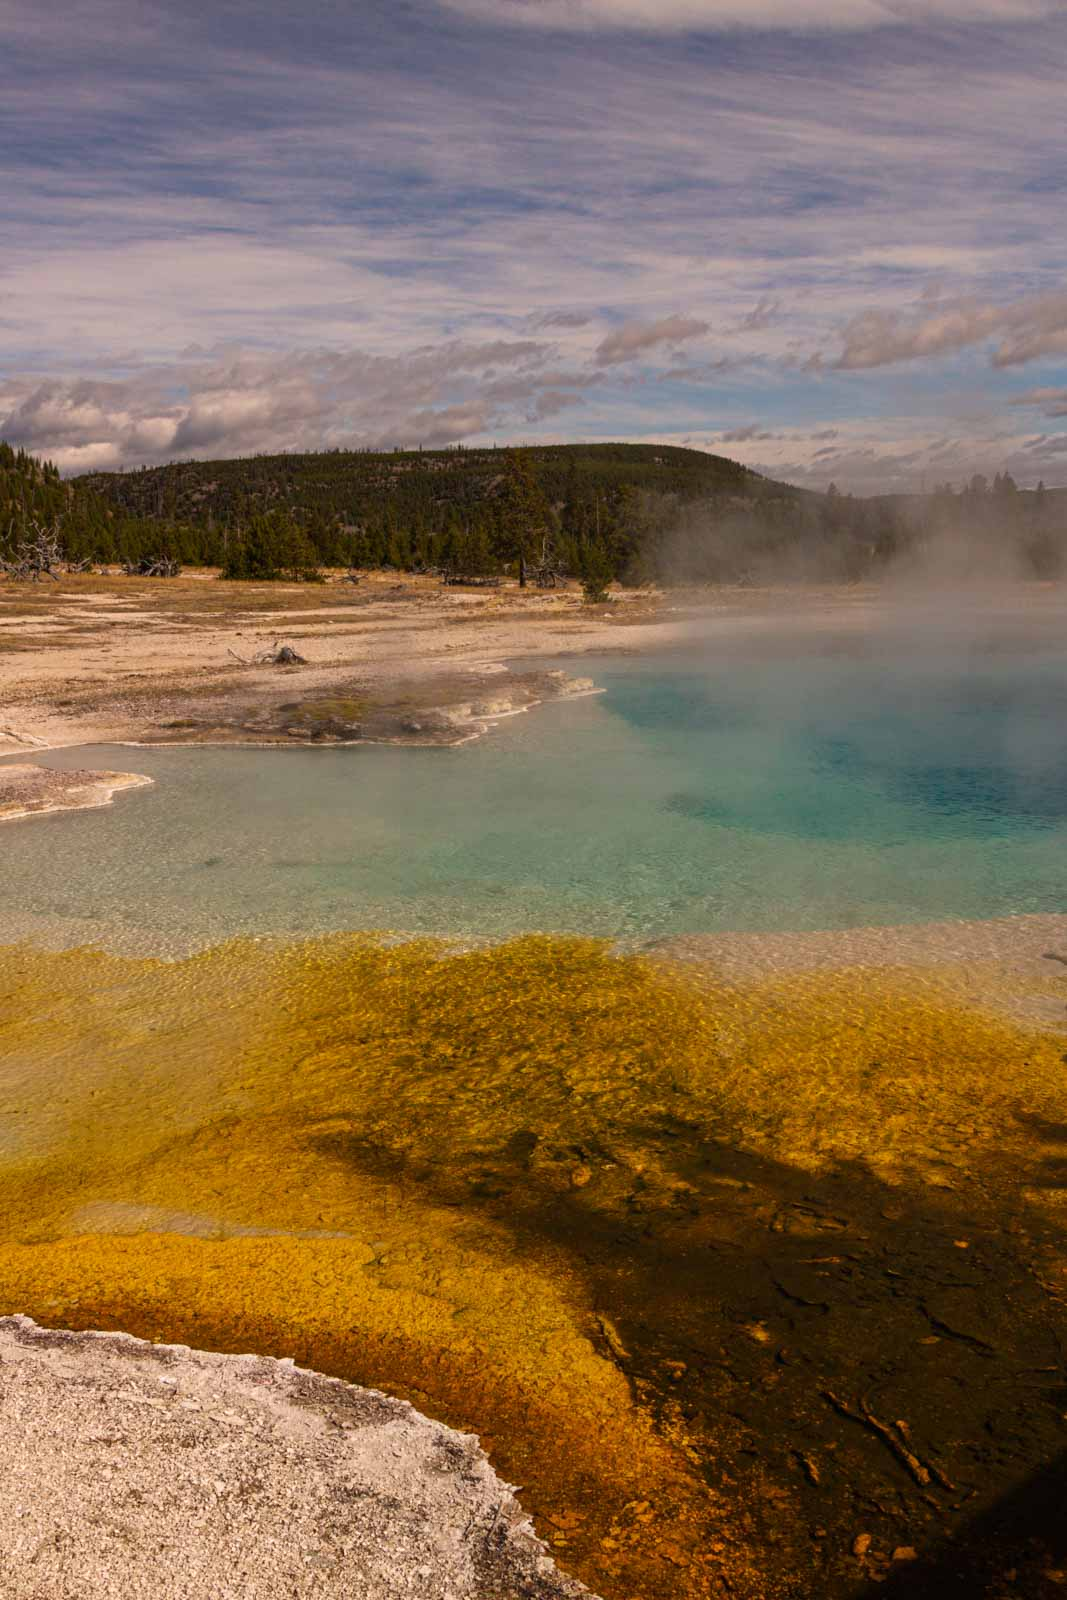 A view of Biscuit Basin that shouldn't be skipped on your Yellowstone Itinerary